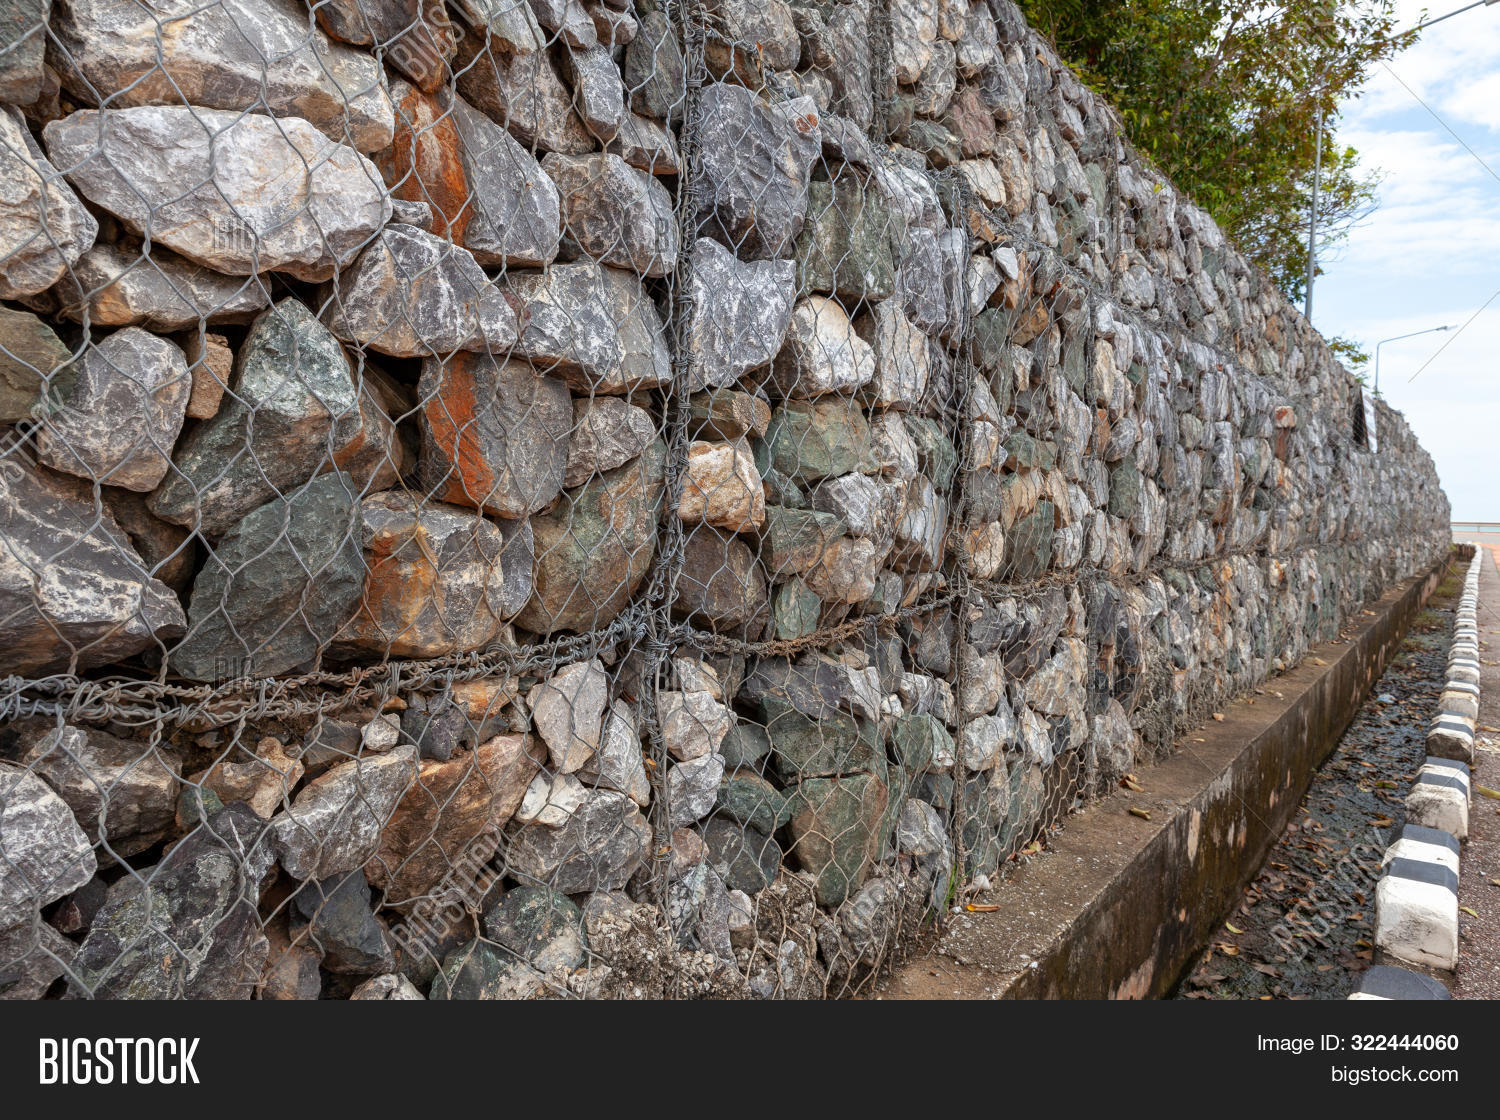 architecture,background,barrier,bars,basket,building,construction,contemporary,crushed,defend,design,erosion,exterior,fence,filled,gabion,galvanized,garden,gardening,granite,gravel,grid,horticulture,landscaping,landslide,material,mesh,metal,modern,natural,pattern,protection,protective,retaining,rock,stacked,steel,stone,stonewall,stonework,structure,surface,surroundings,texture,textured,wall,wire